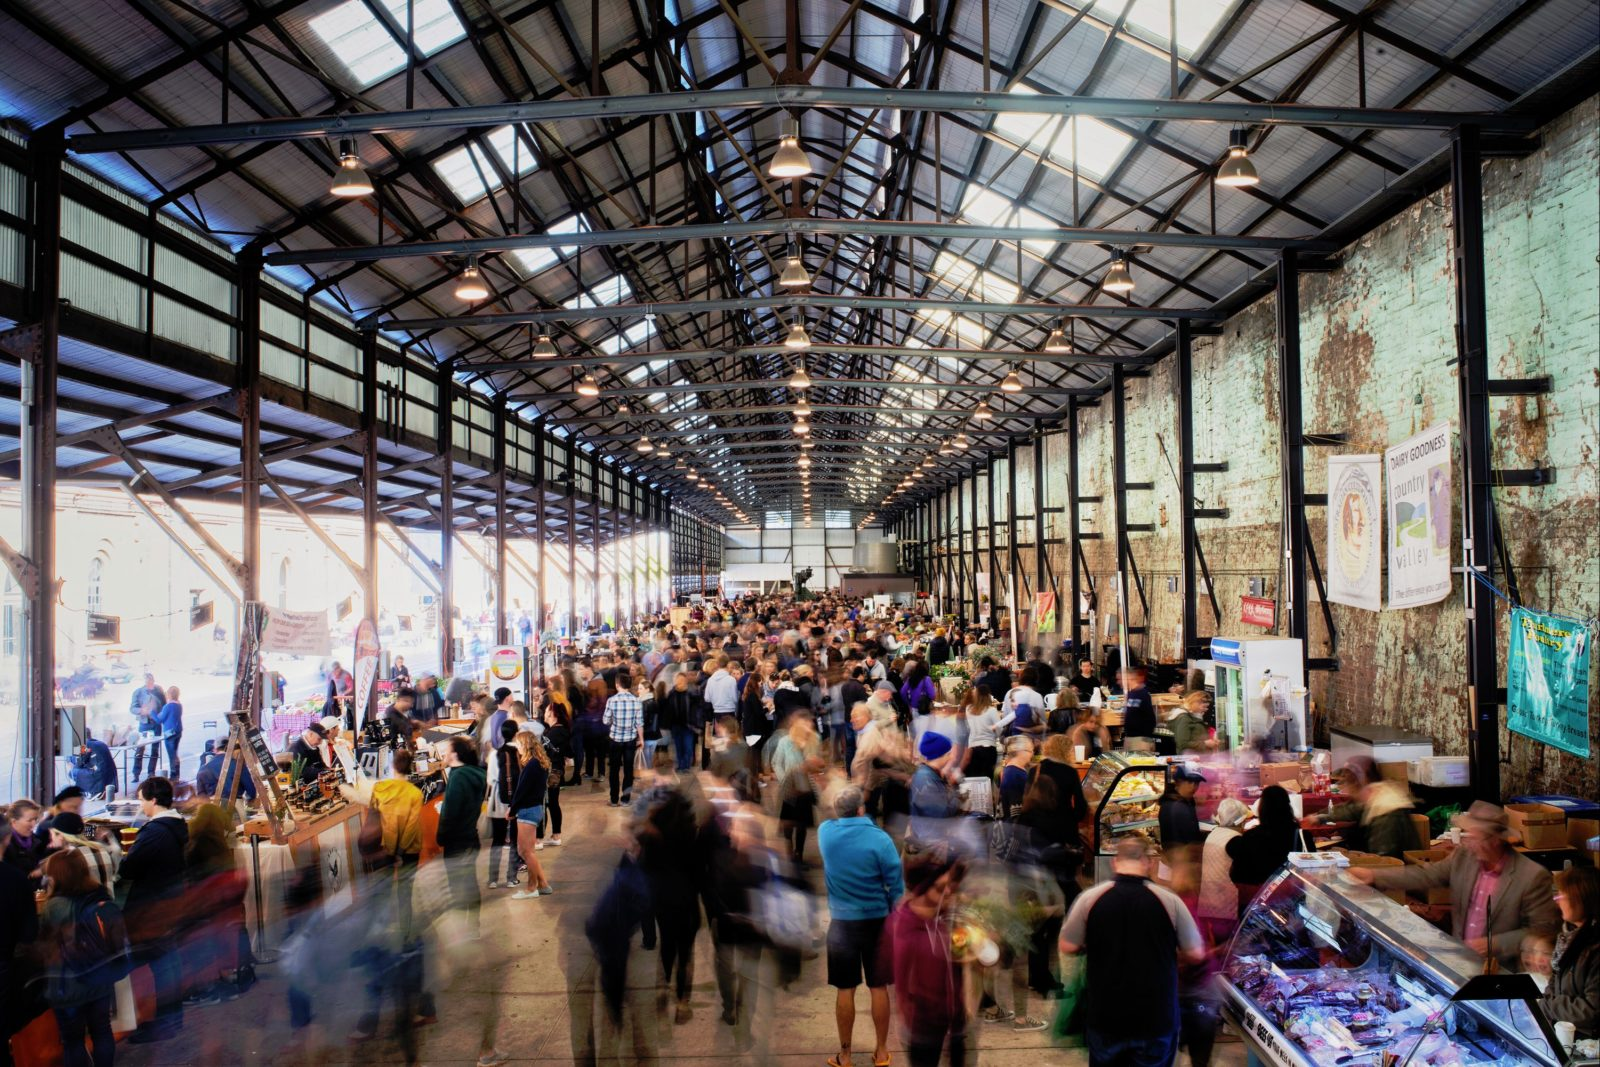 A busy market place at Carriageworks